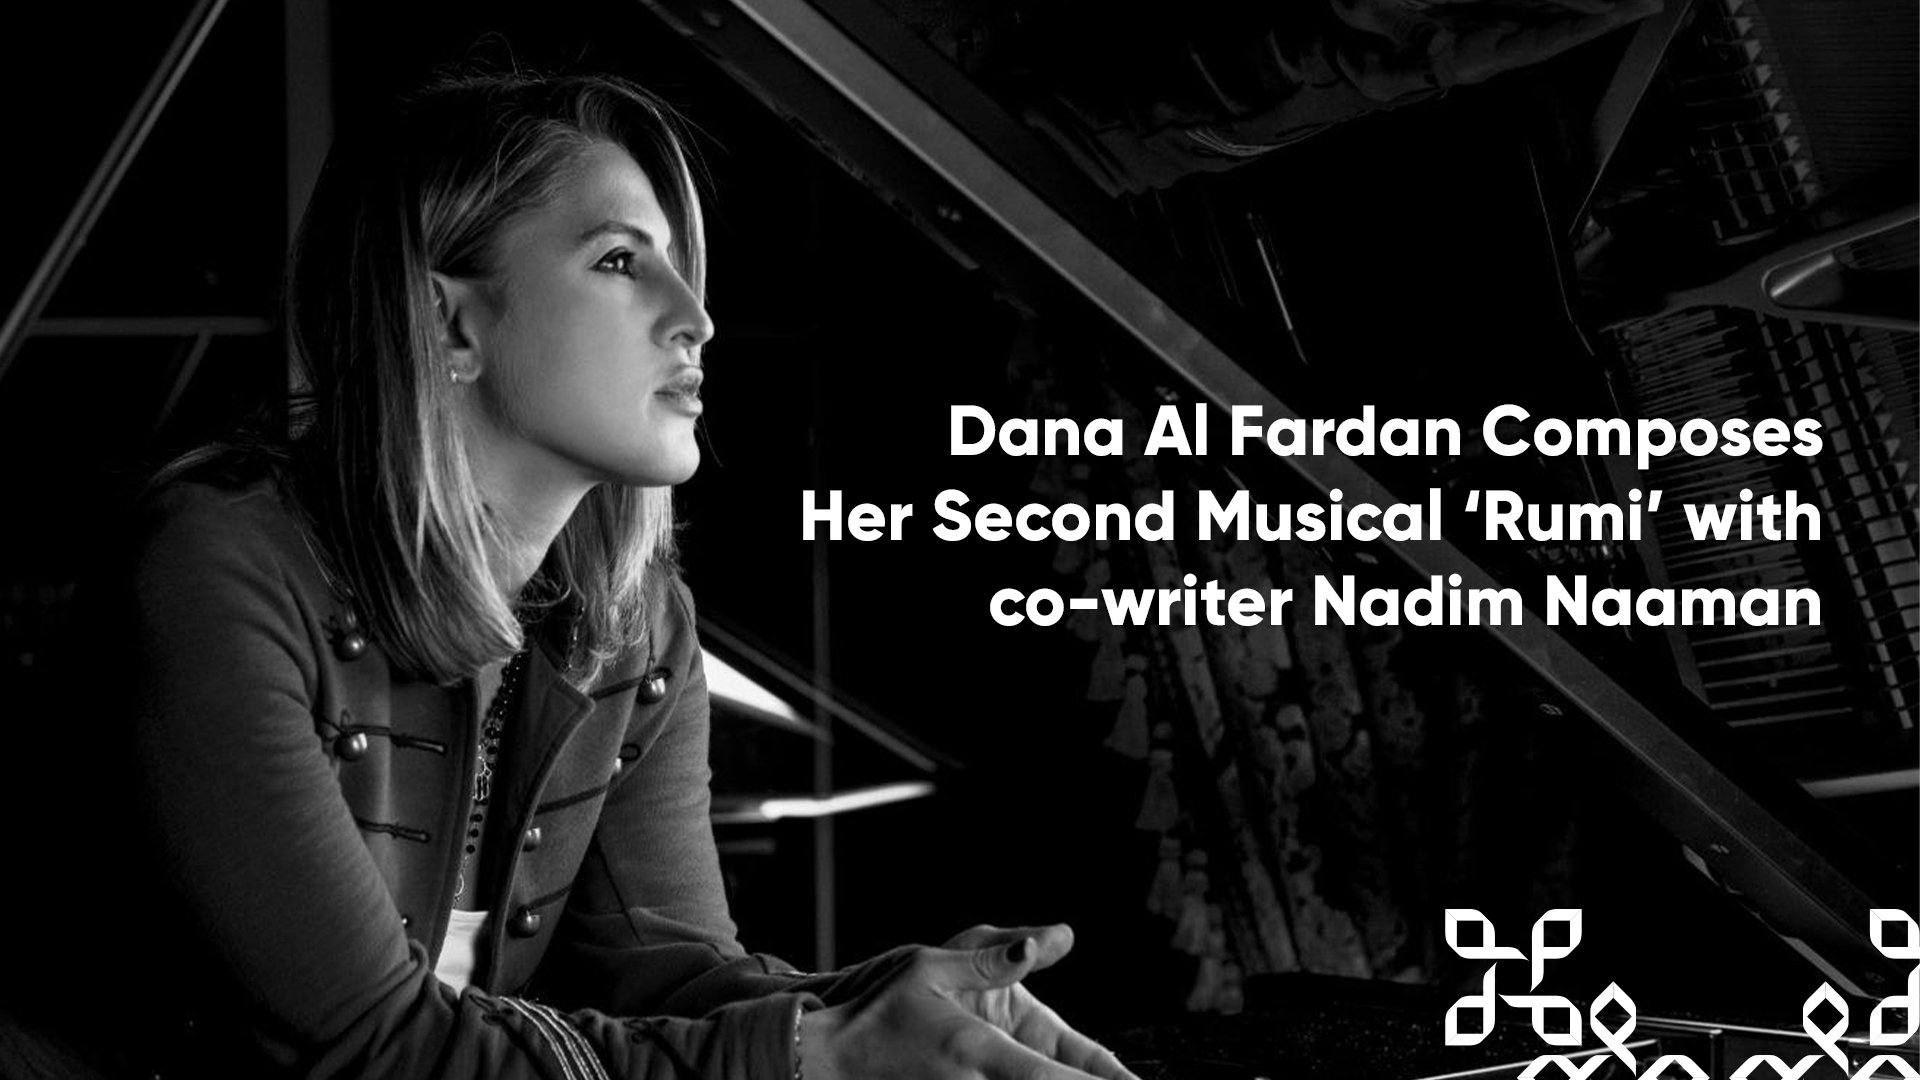 Dana Al Fardan Composes her Second Musical 'Rumi' along with Co-Writer and West End star Nadim Naaman